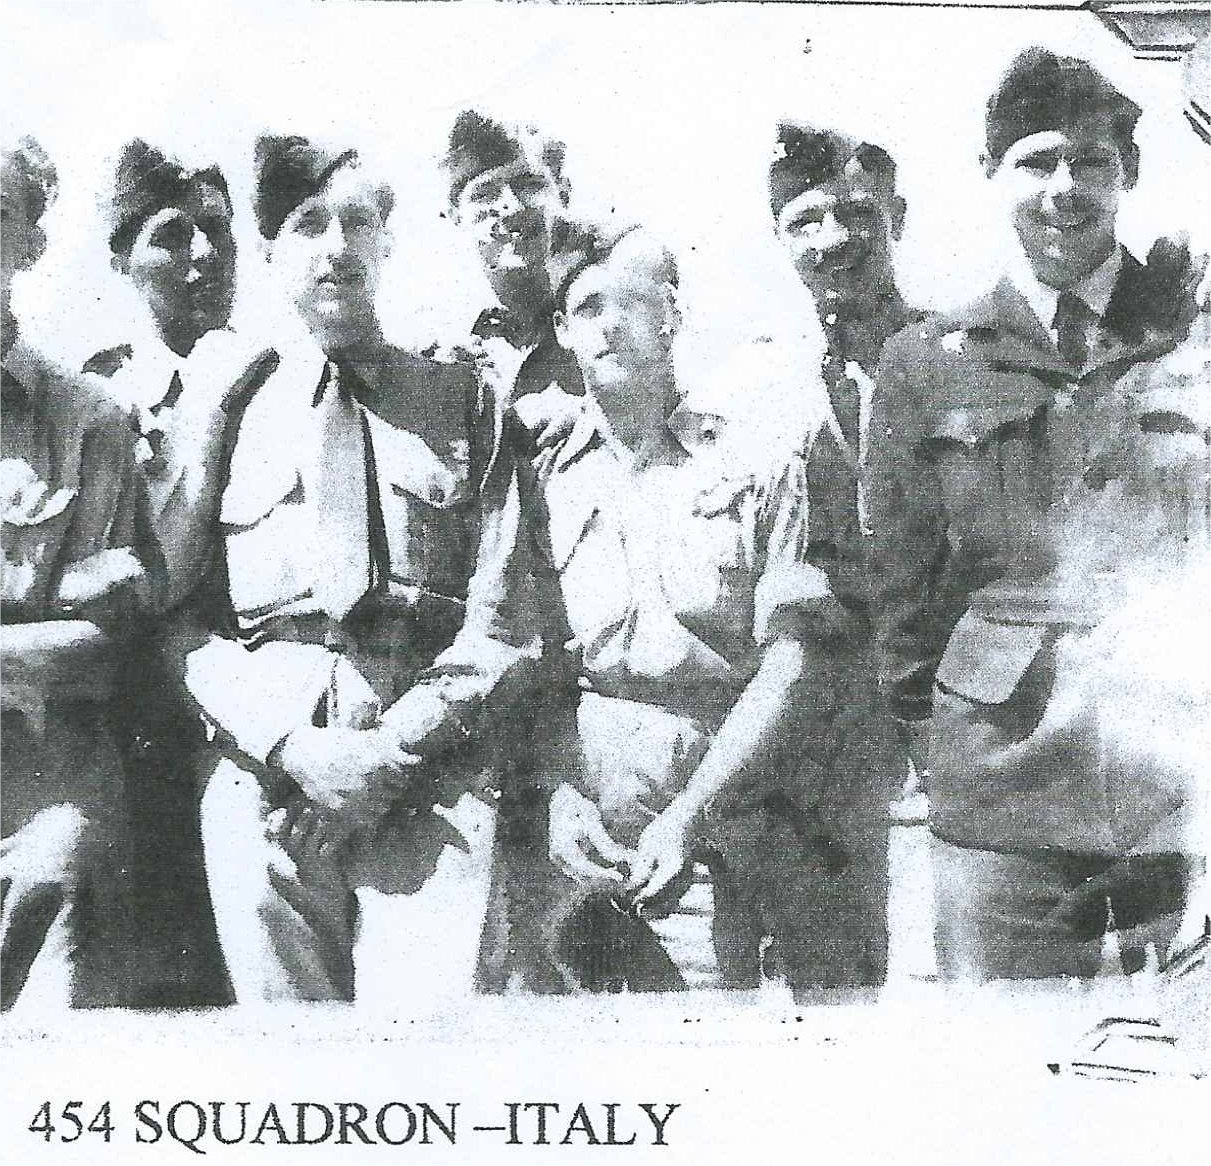 11_M Ivicevich_454 Squadron Italy